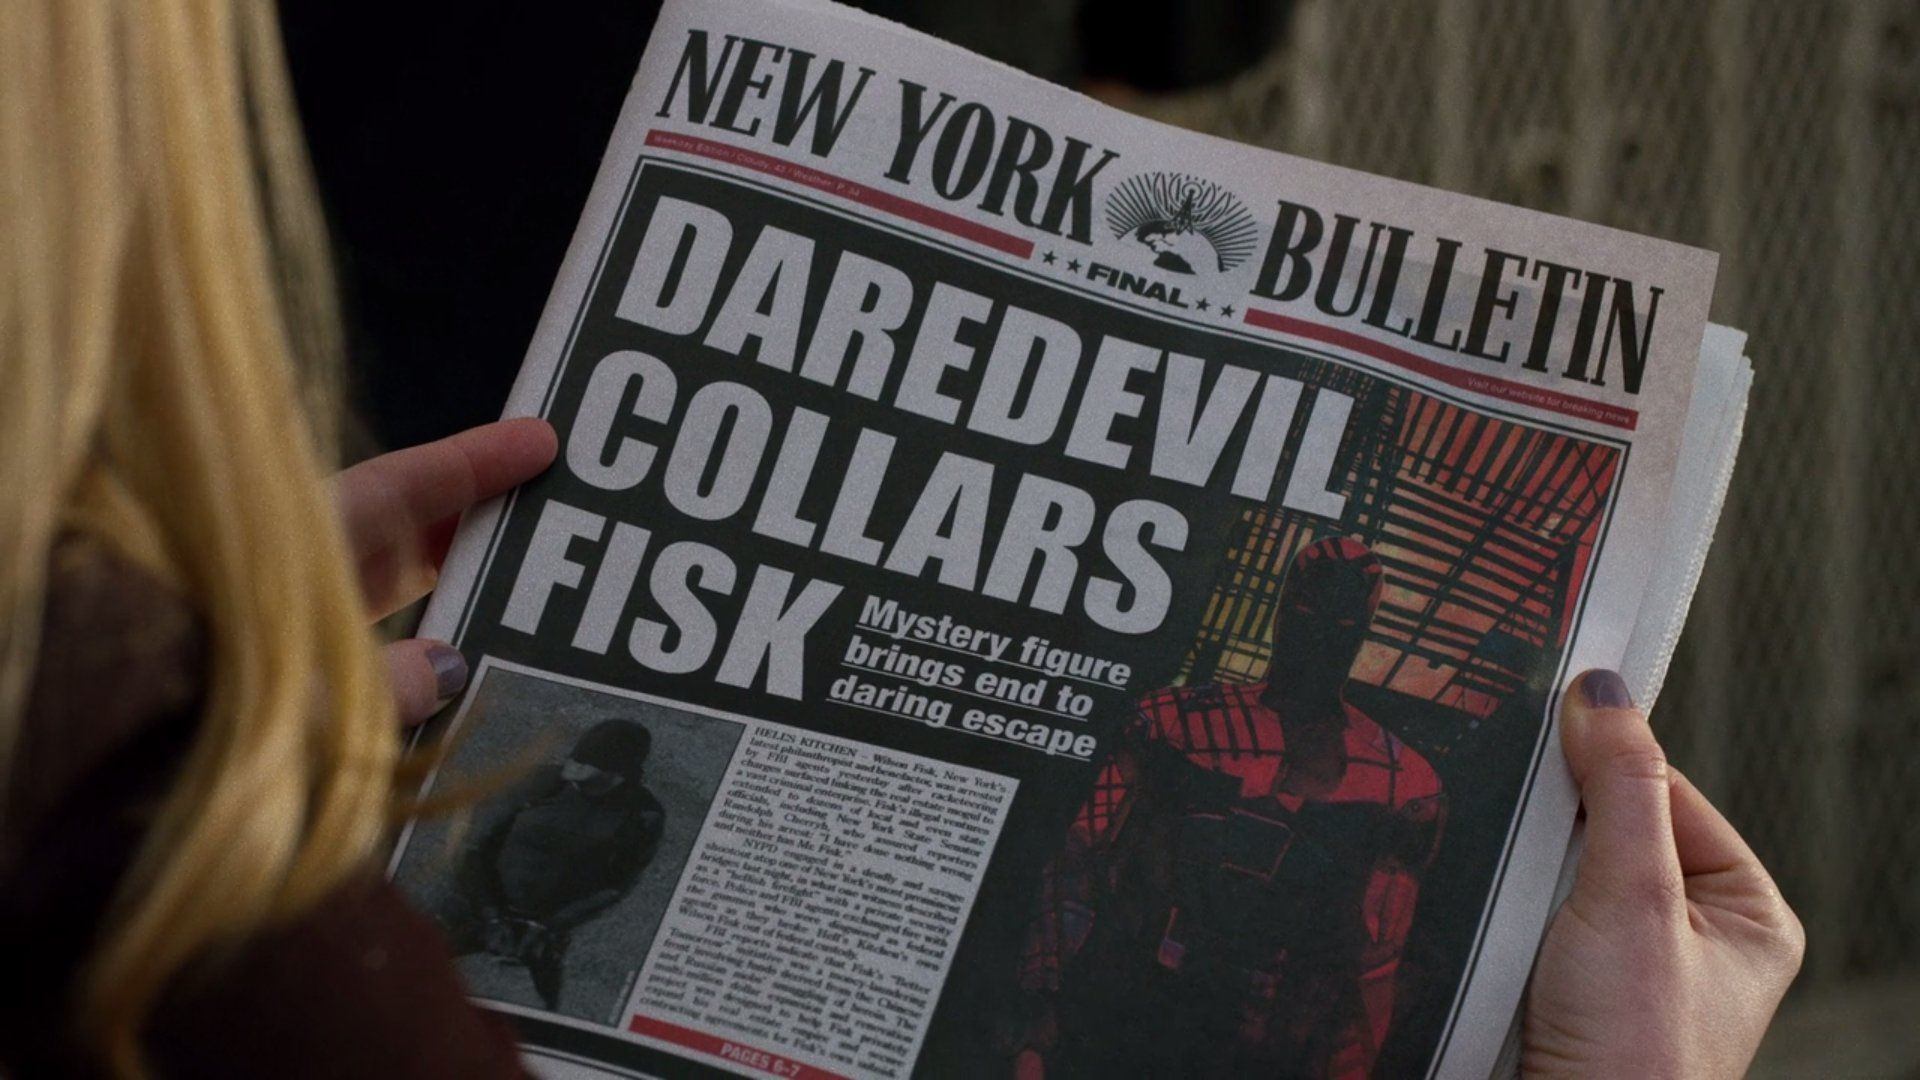 Une New York Bulletin Daredevil collars Fisk close up Alex Maleev easter egg daredevil serie 113 pix geeks